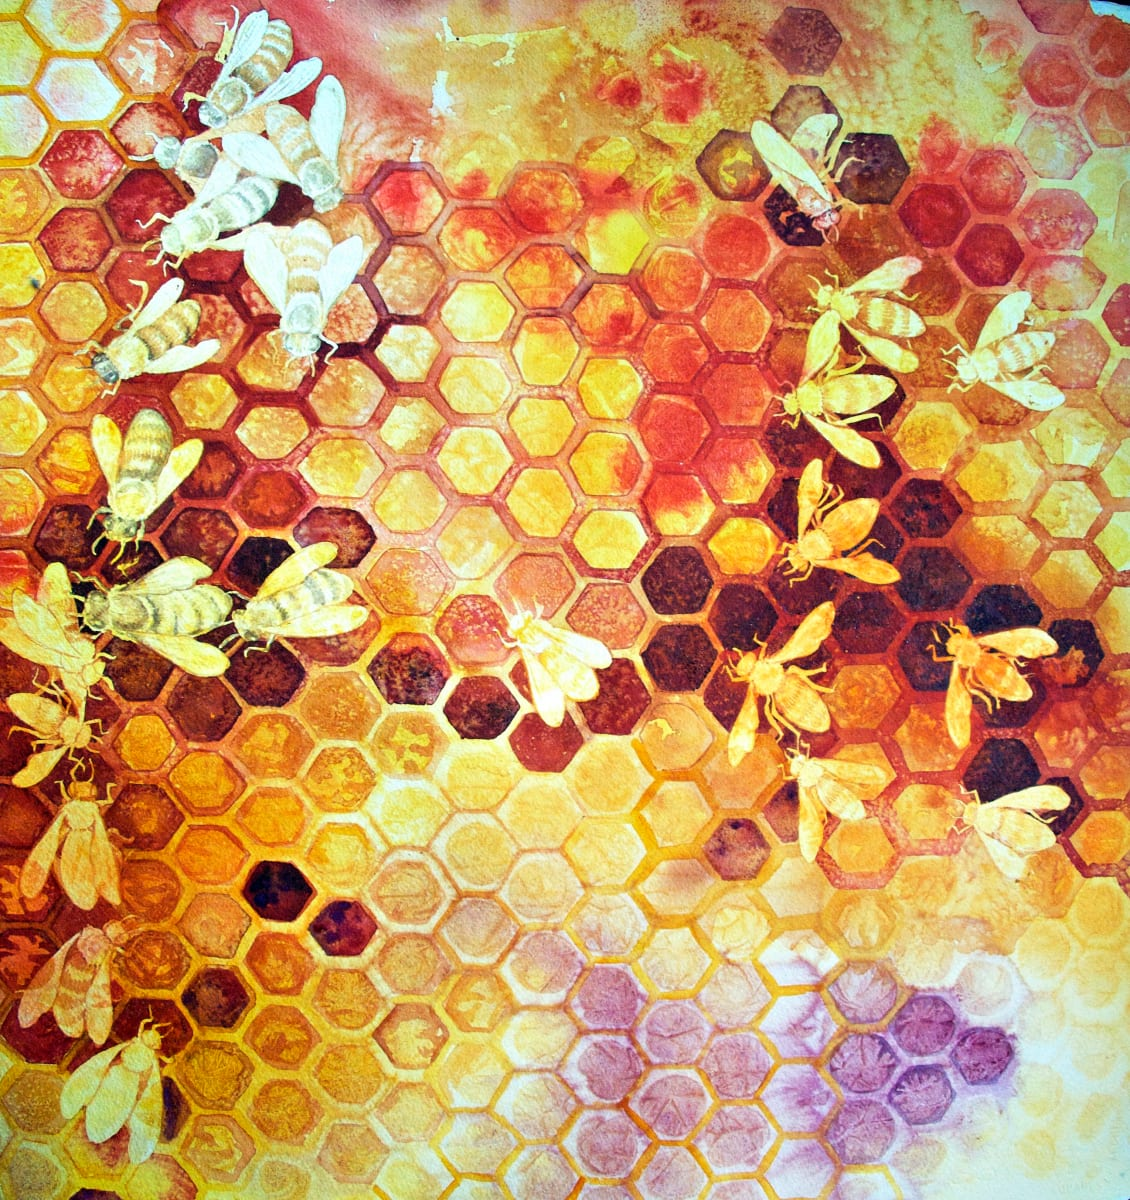 Where Art The Bees VII an original watercolor by Helen R Klebesadel